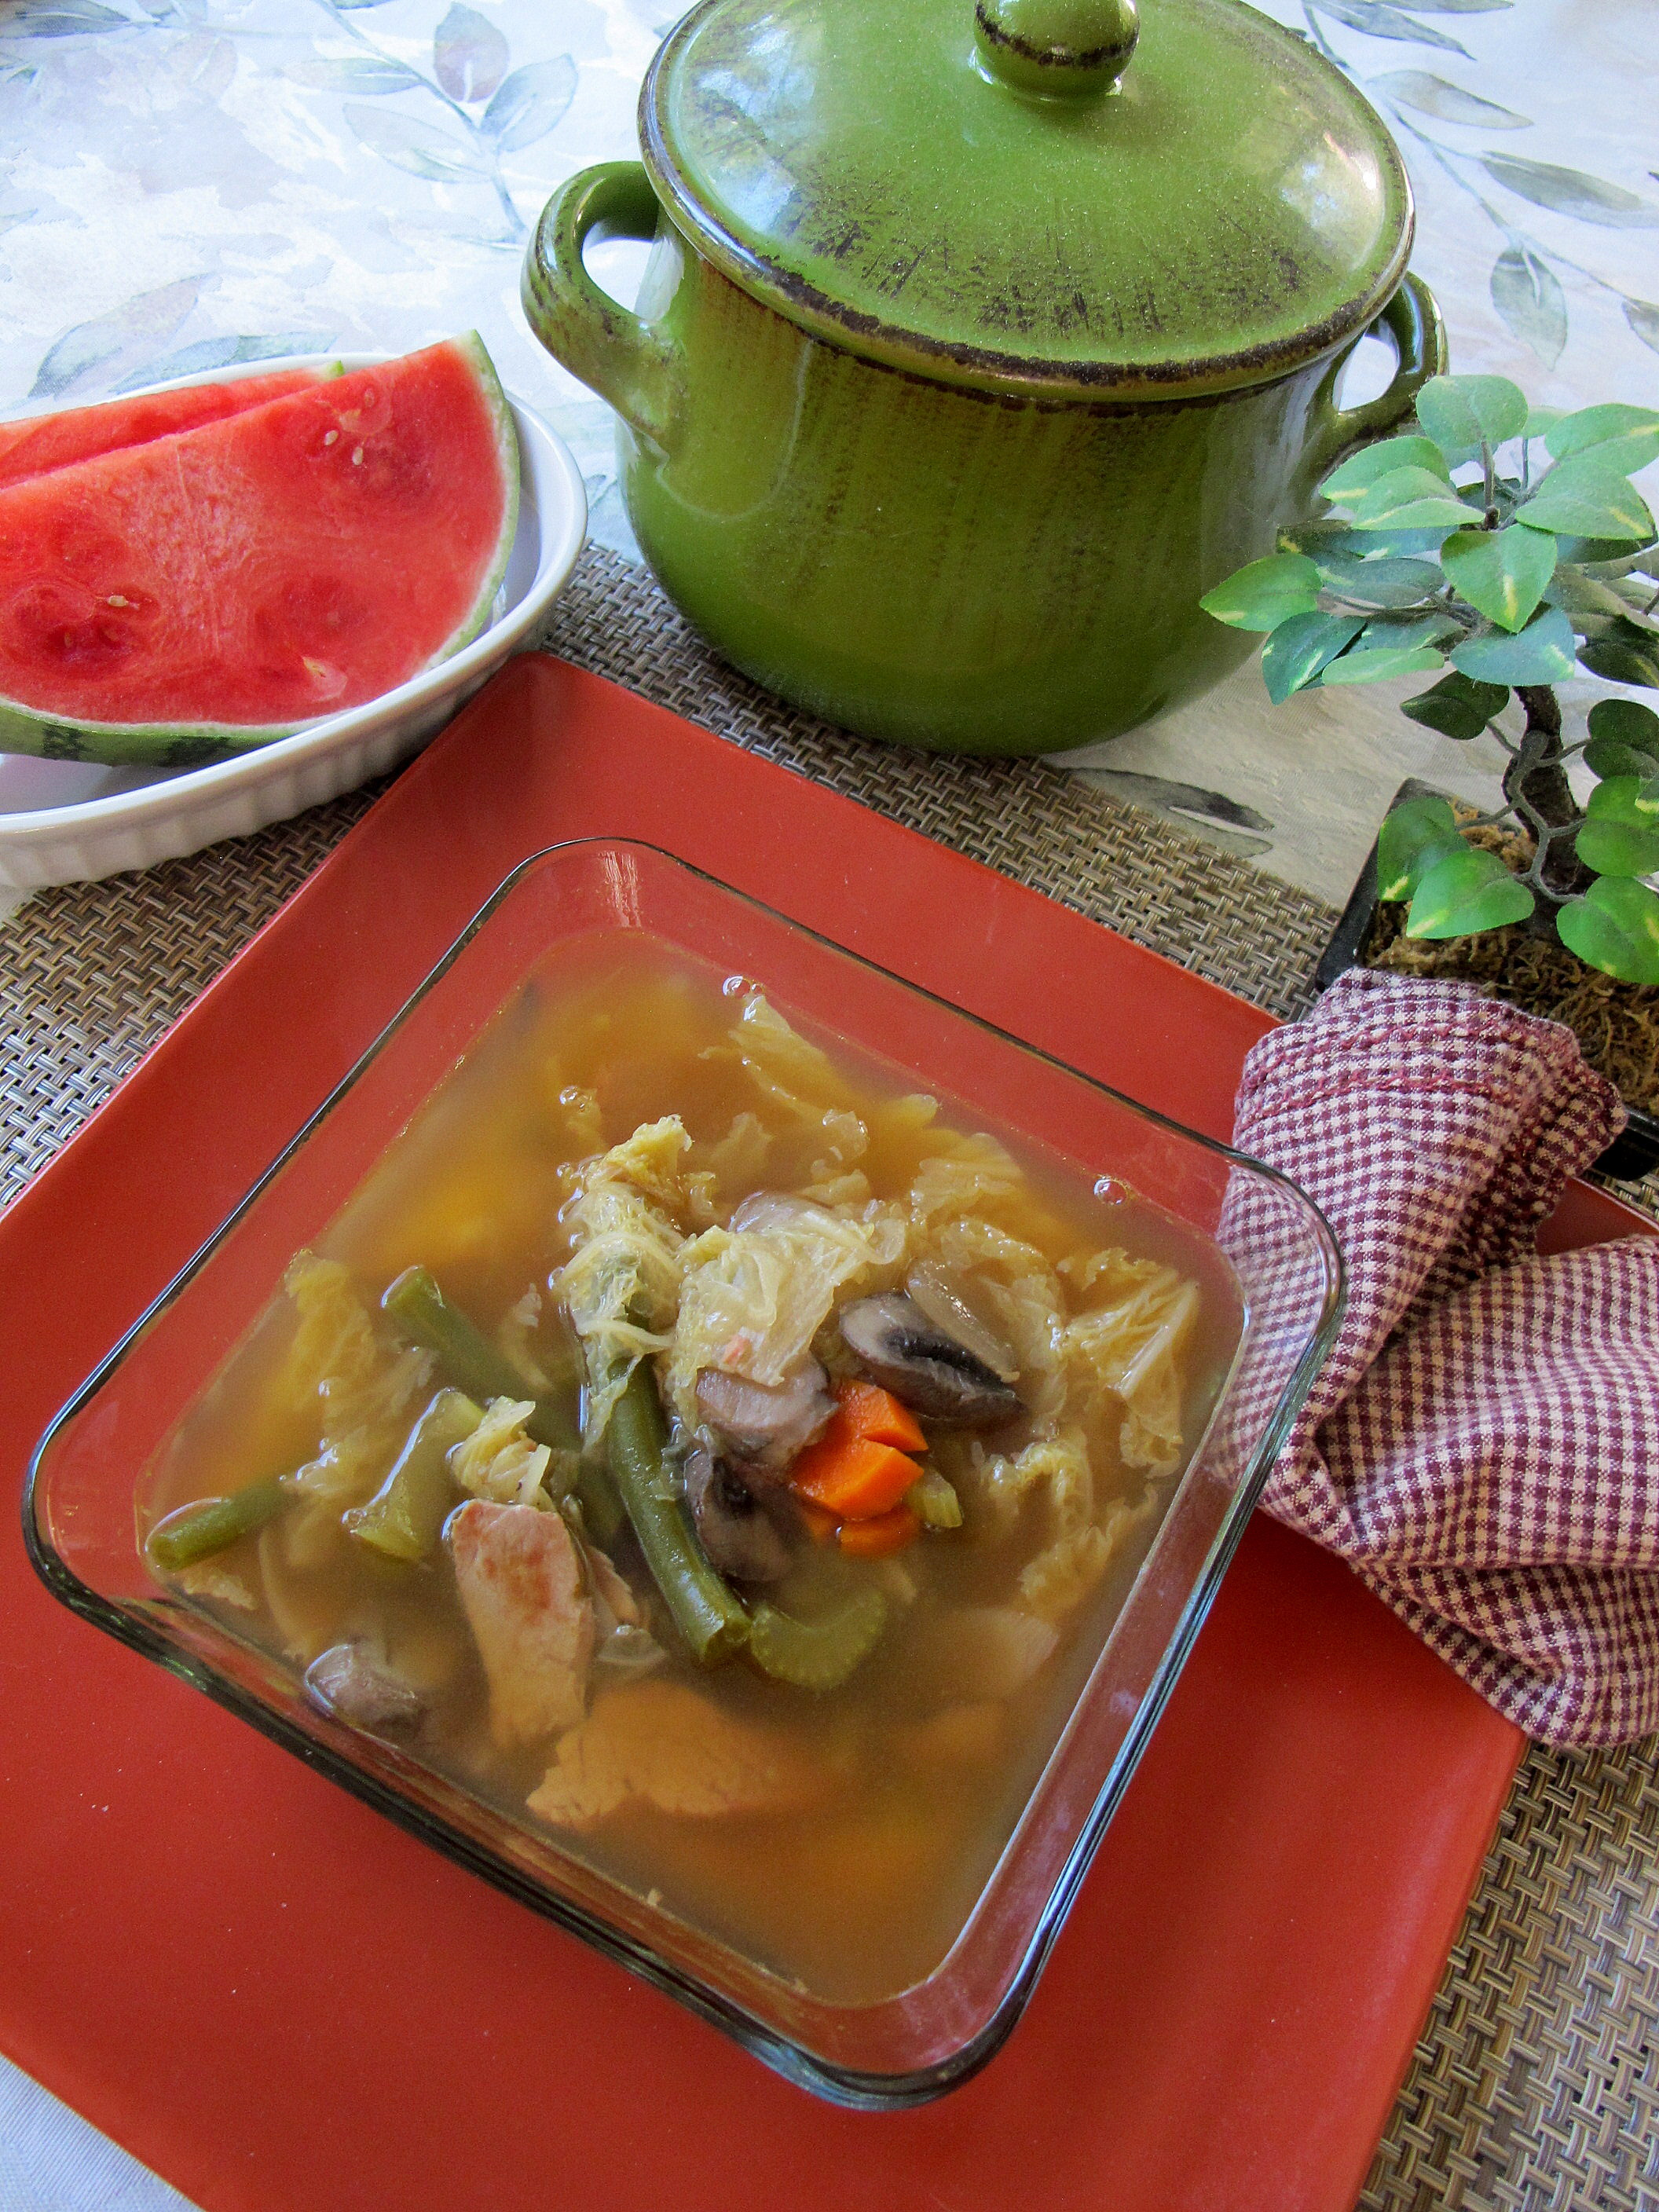 All journeys have secret destinations of which the traveler is unaware. – Martin Buber and Napa Cabbage and Pork Soup